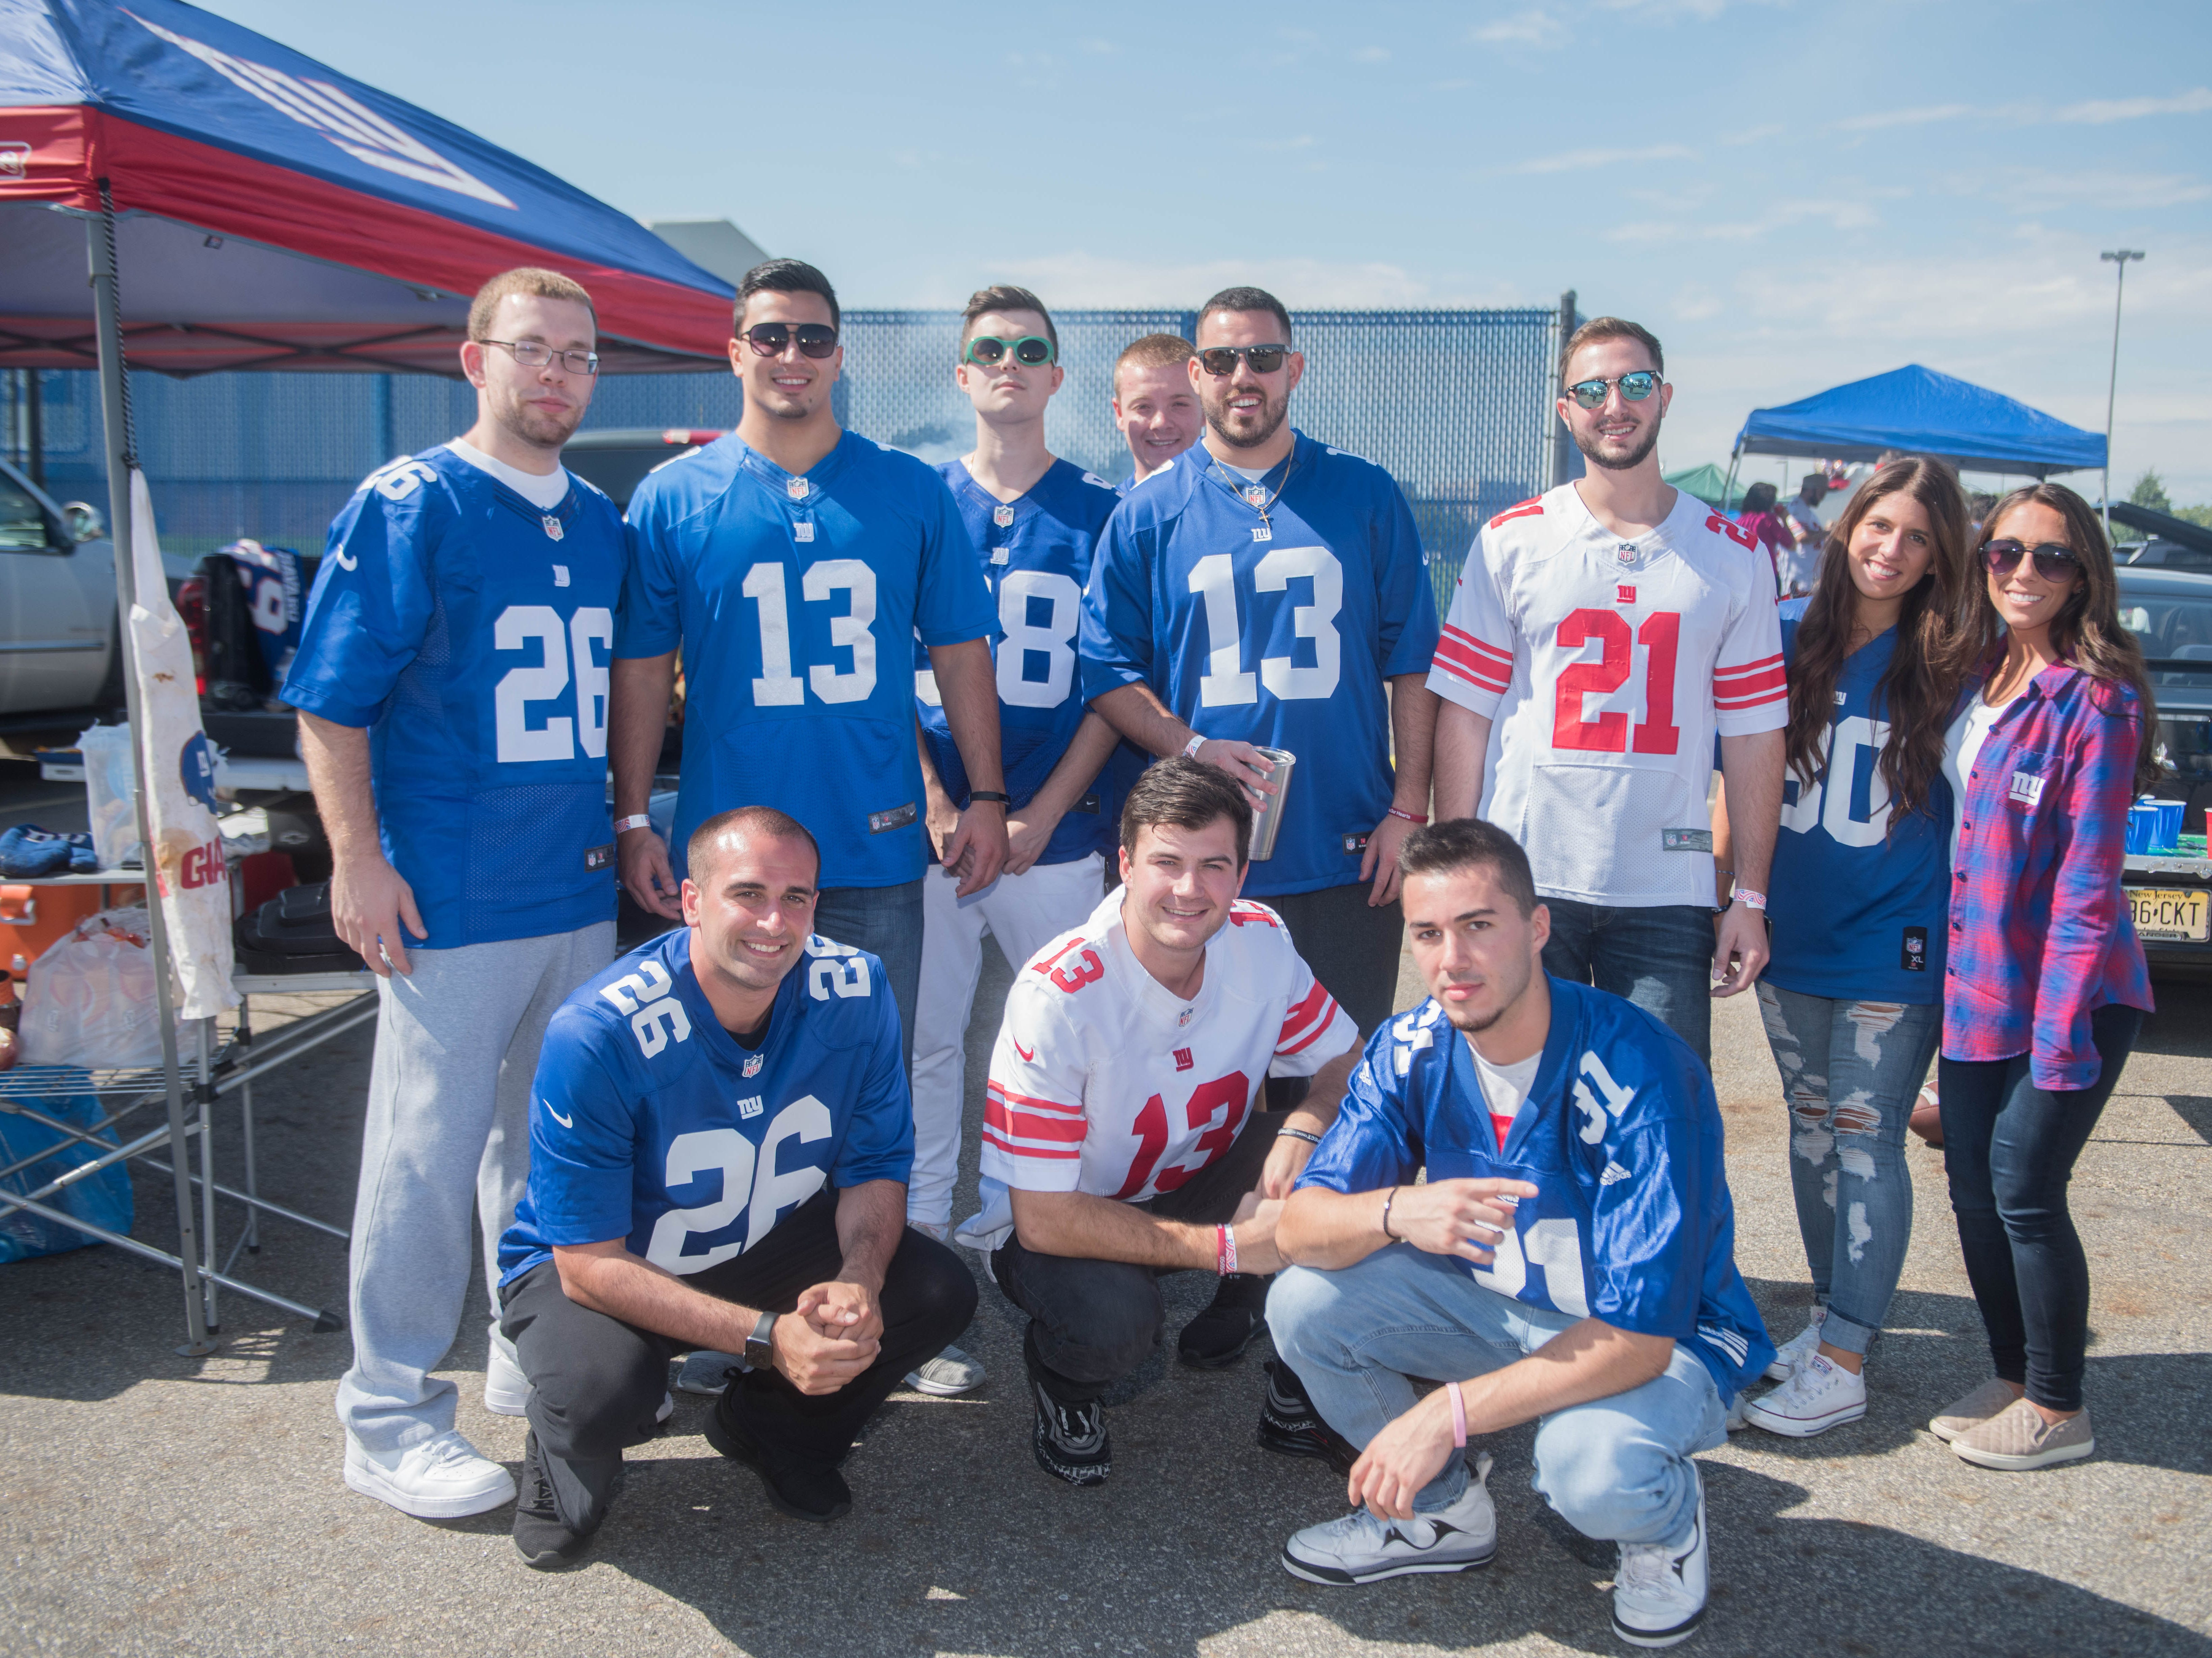 CJ, Dave, Donald, Brian, John, Gary, Stephen, Brett, Jacquelyn and Alexis tailgate at the Giants vs. Saints game Sunday, Sept. 30, 2018.